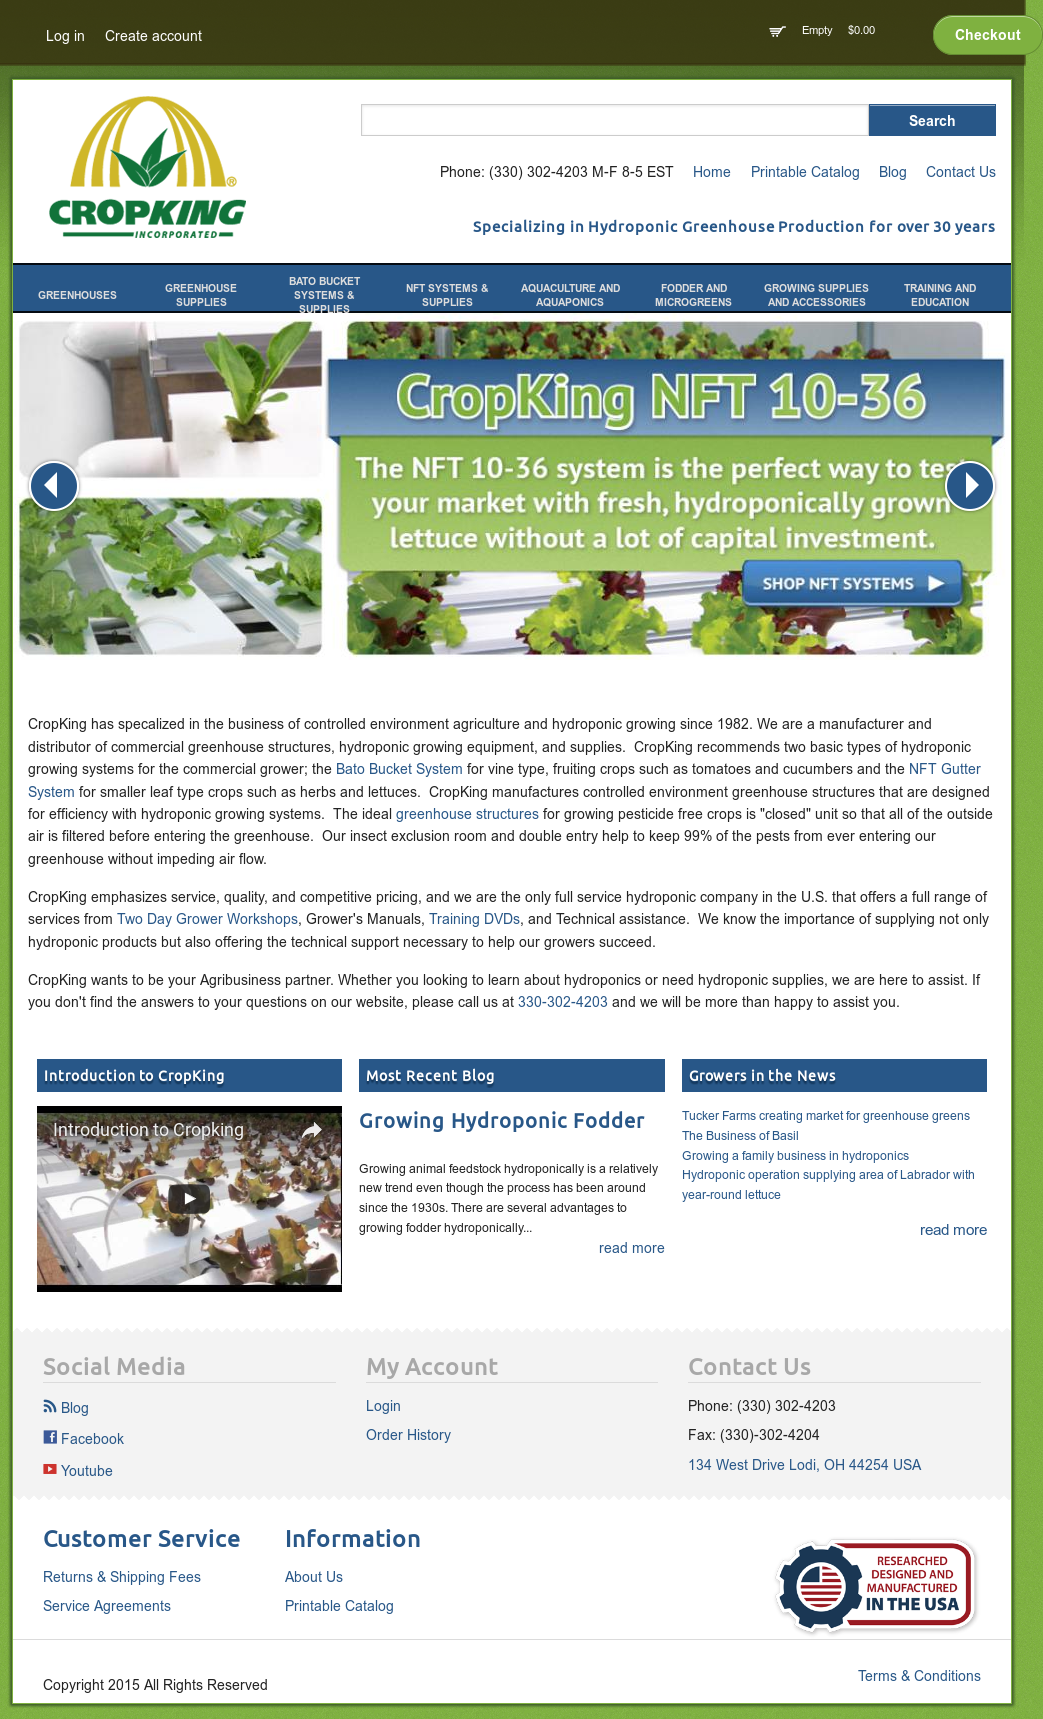 CropKing Competitors, Revenue and Employees - Owler Company Profile